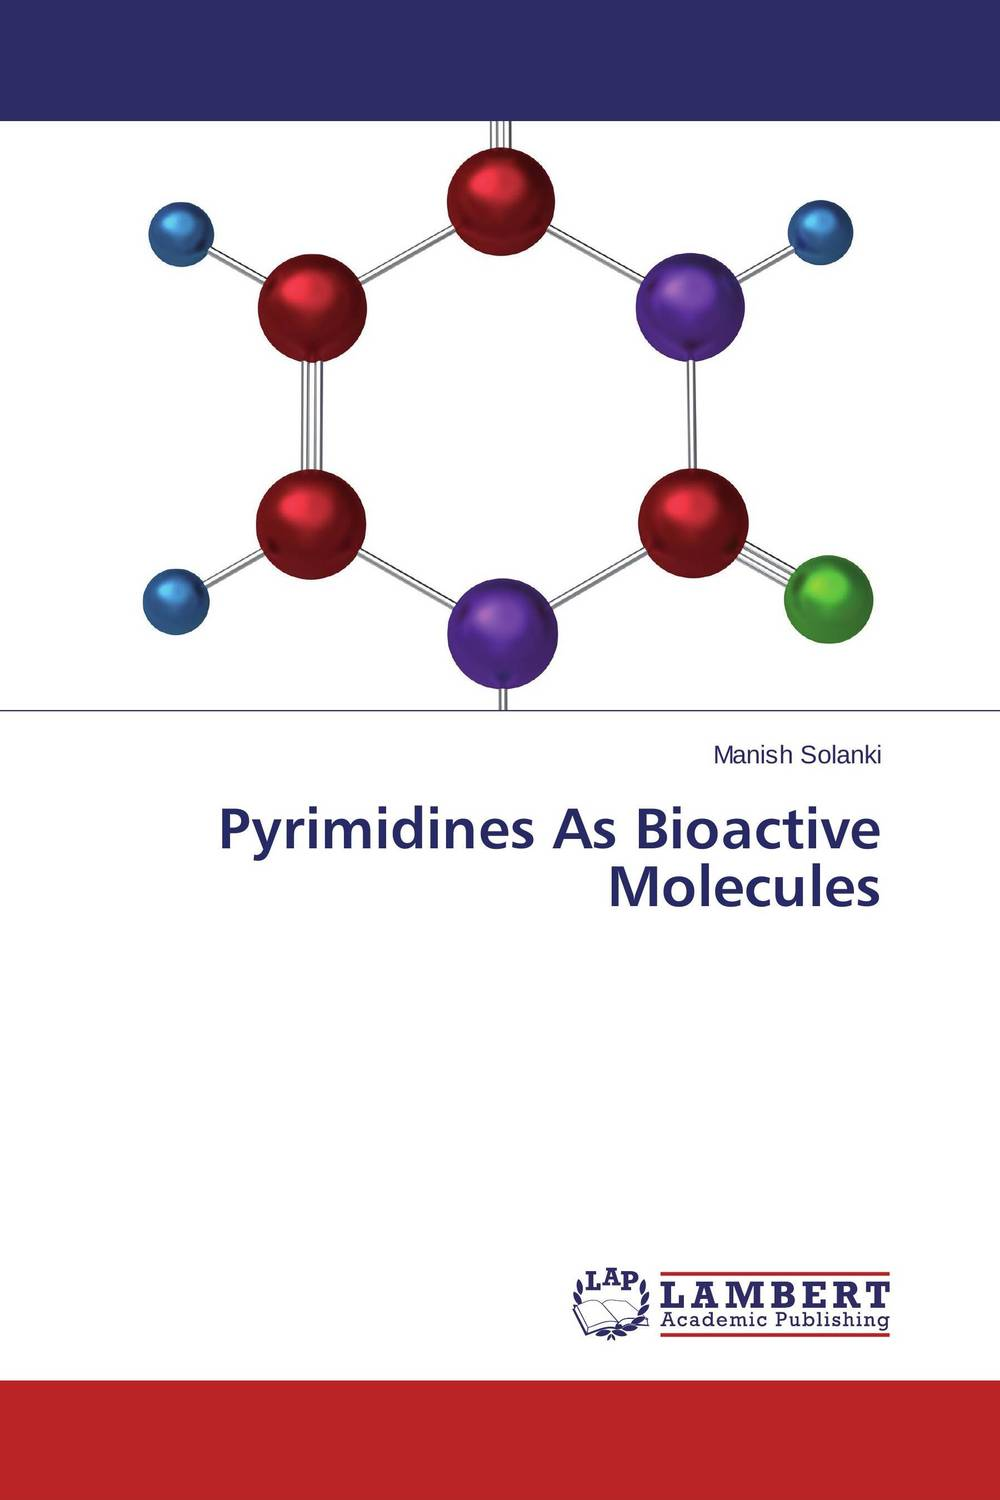 Pyrimidines As Bioactive Molecules